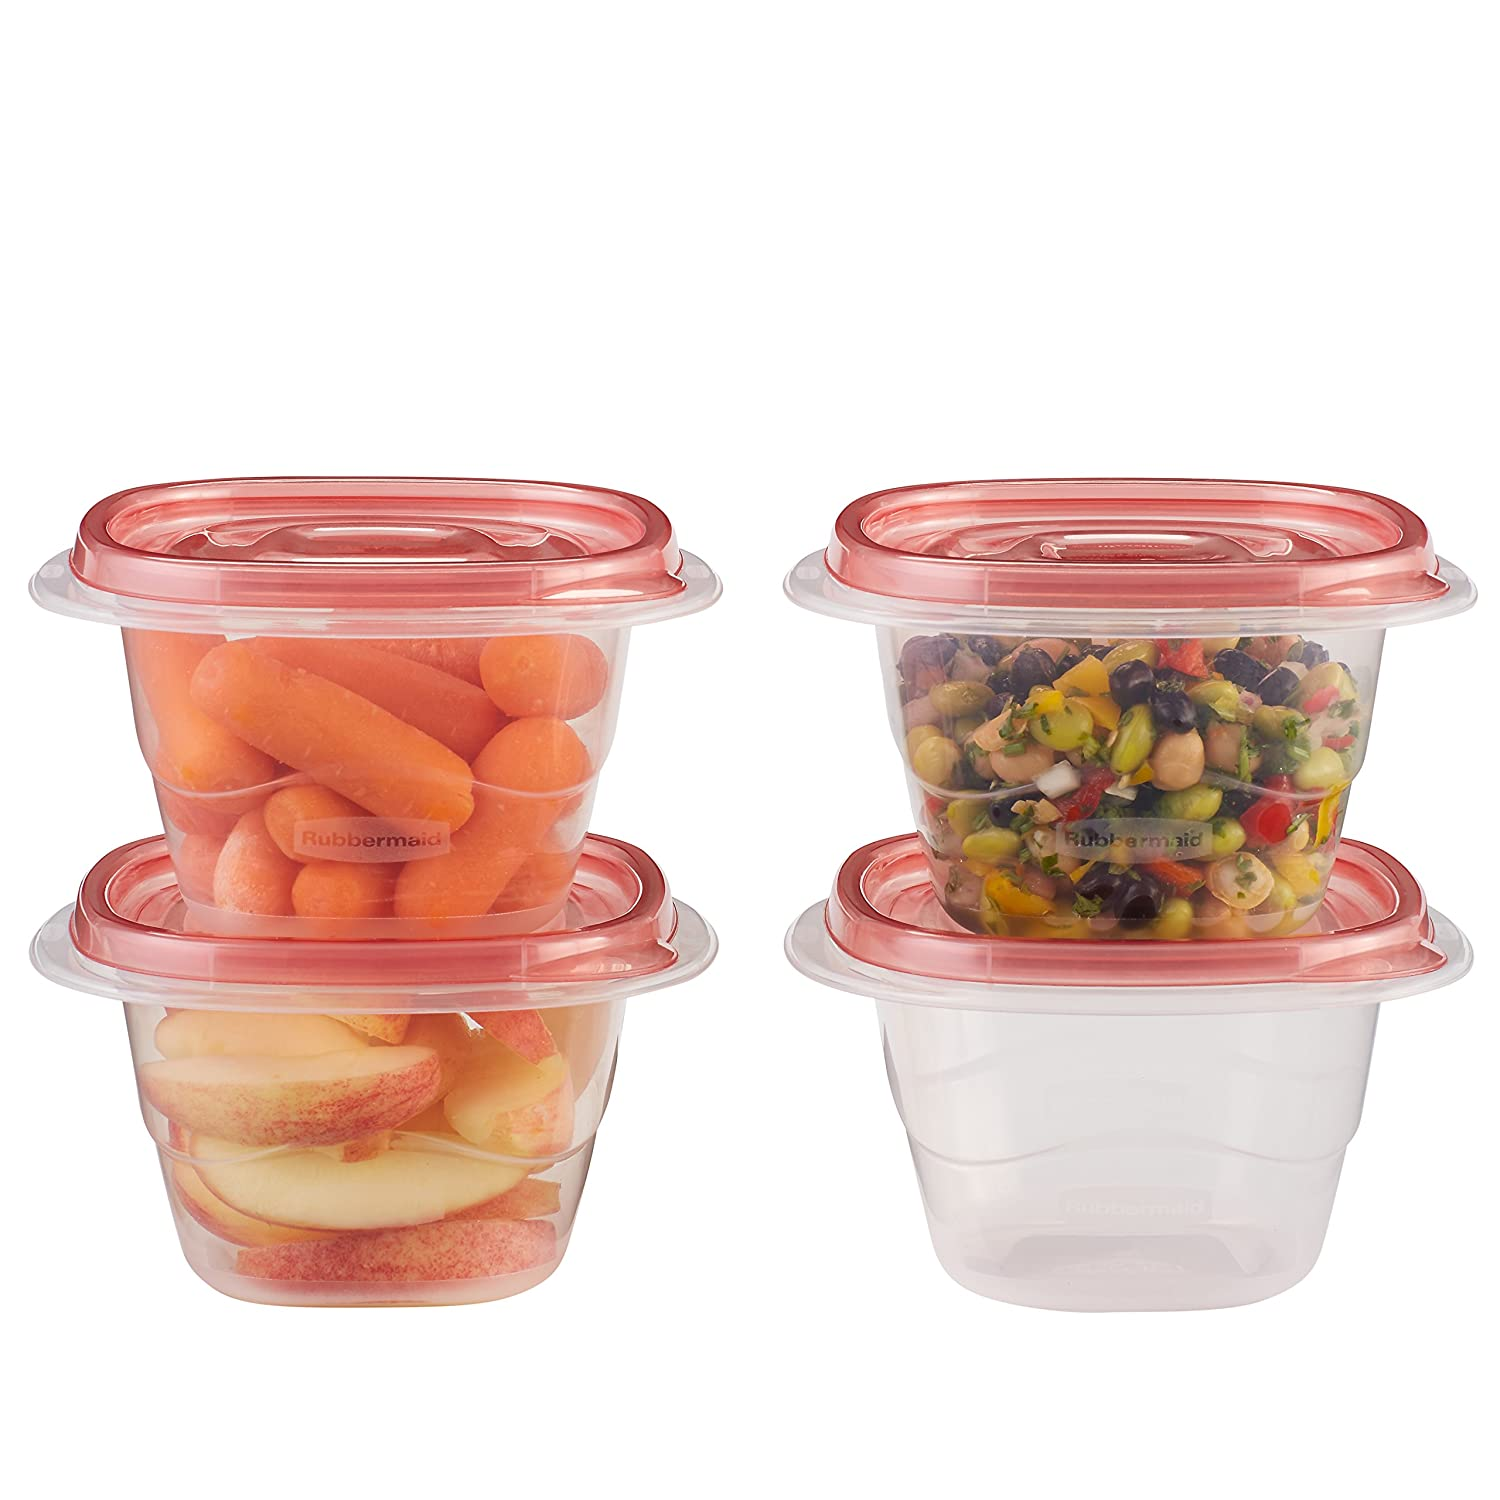 Rubbermaid TakeAlongs Food Storage Containers, Minis, 0.5 Cup, 6-Pack, Tint Chili 1803522